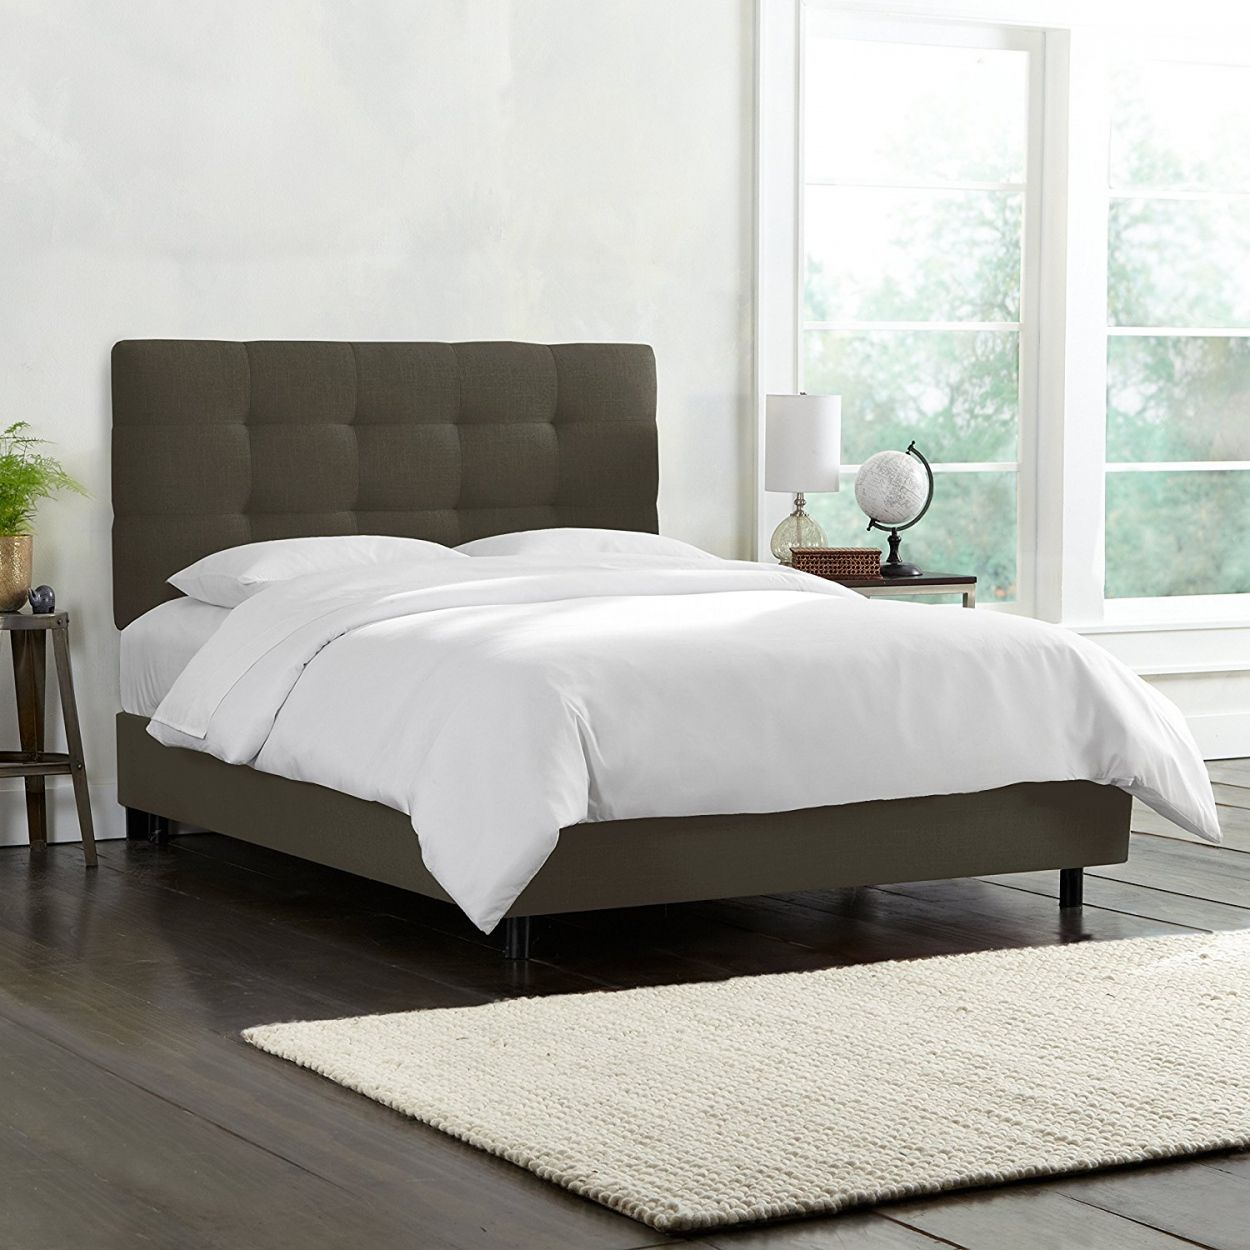 Explore Cheap Beds Bedroom Furniture and more